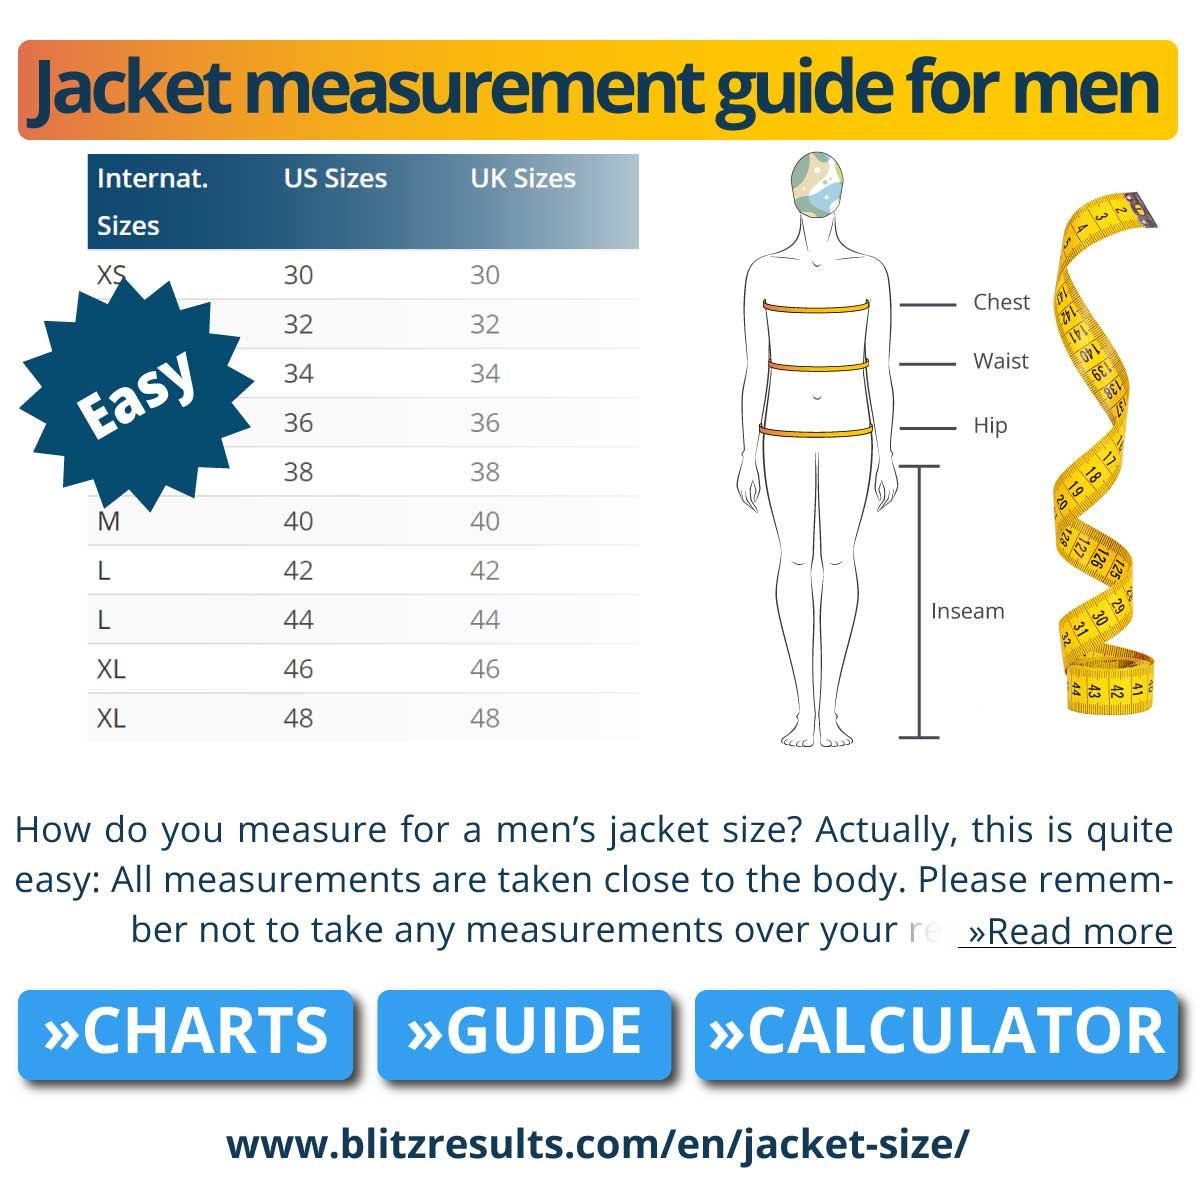 Jacket measurement guide for men